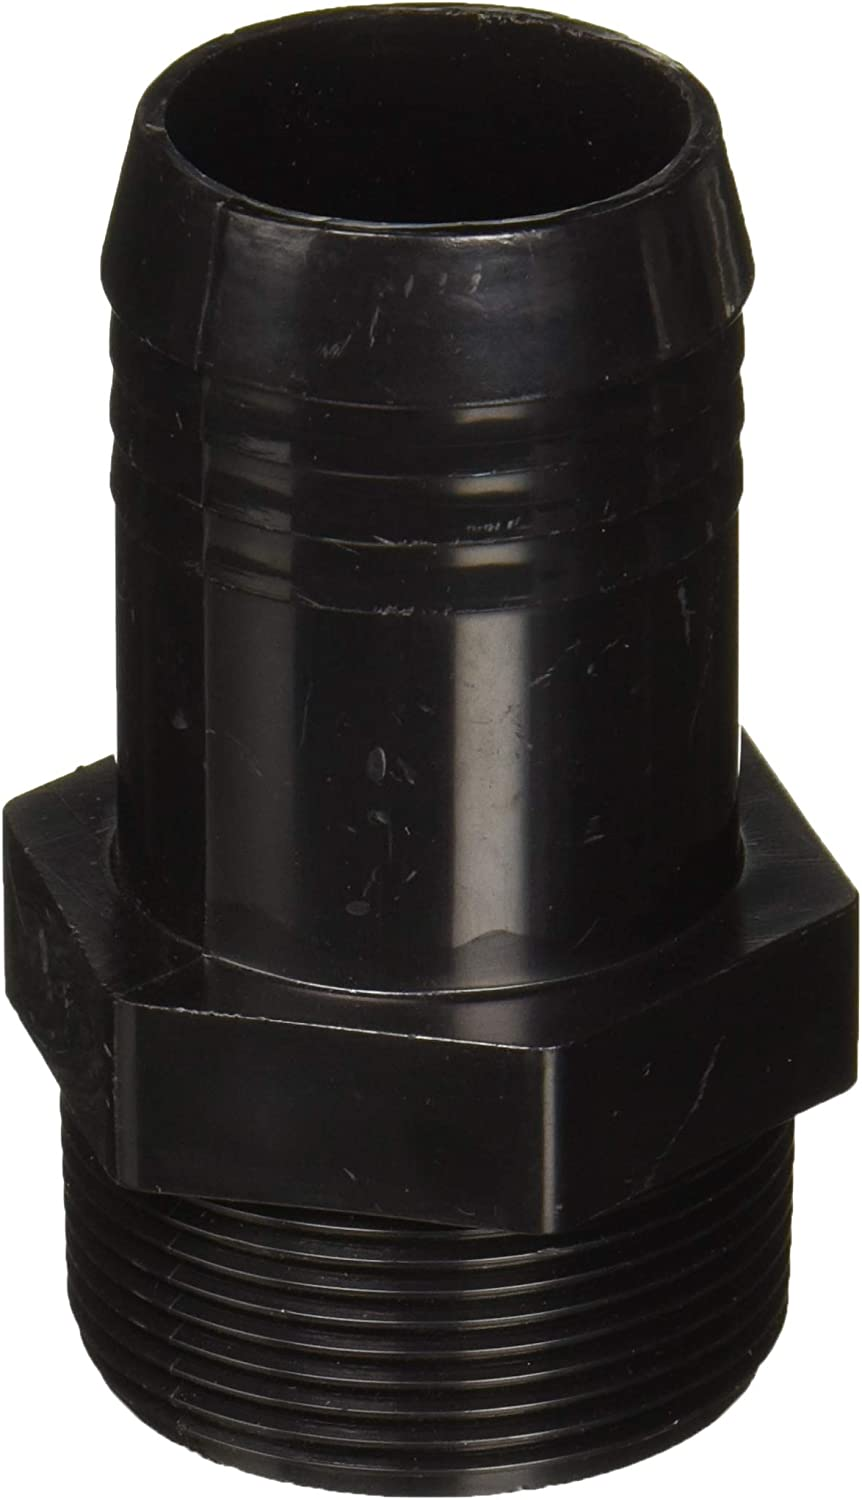 Hayward SPX1091Z2 Hose Male Insert Adapter Replacement for Select Hayward Sand Filters